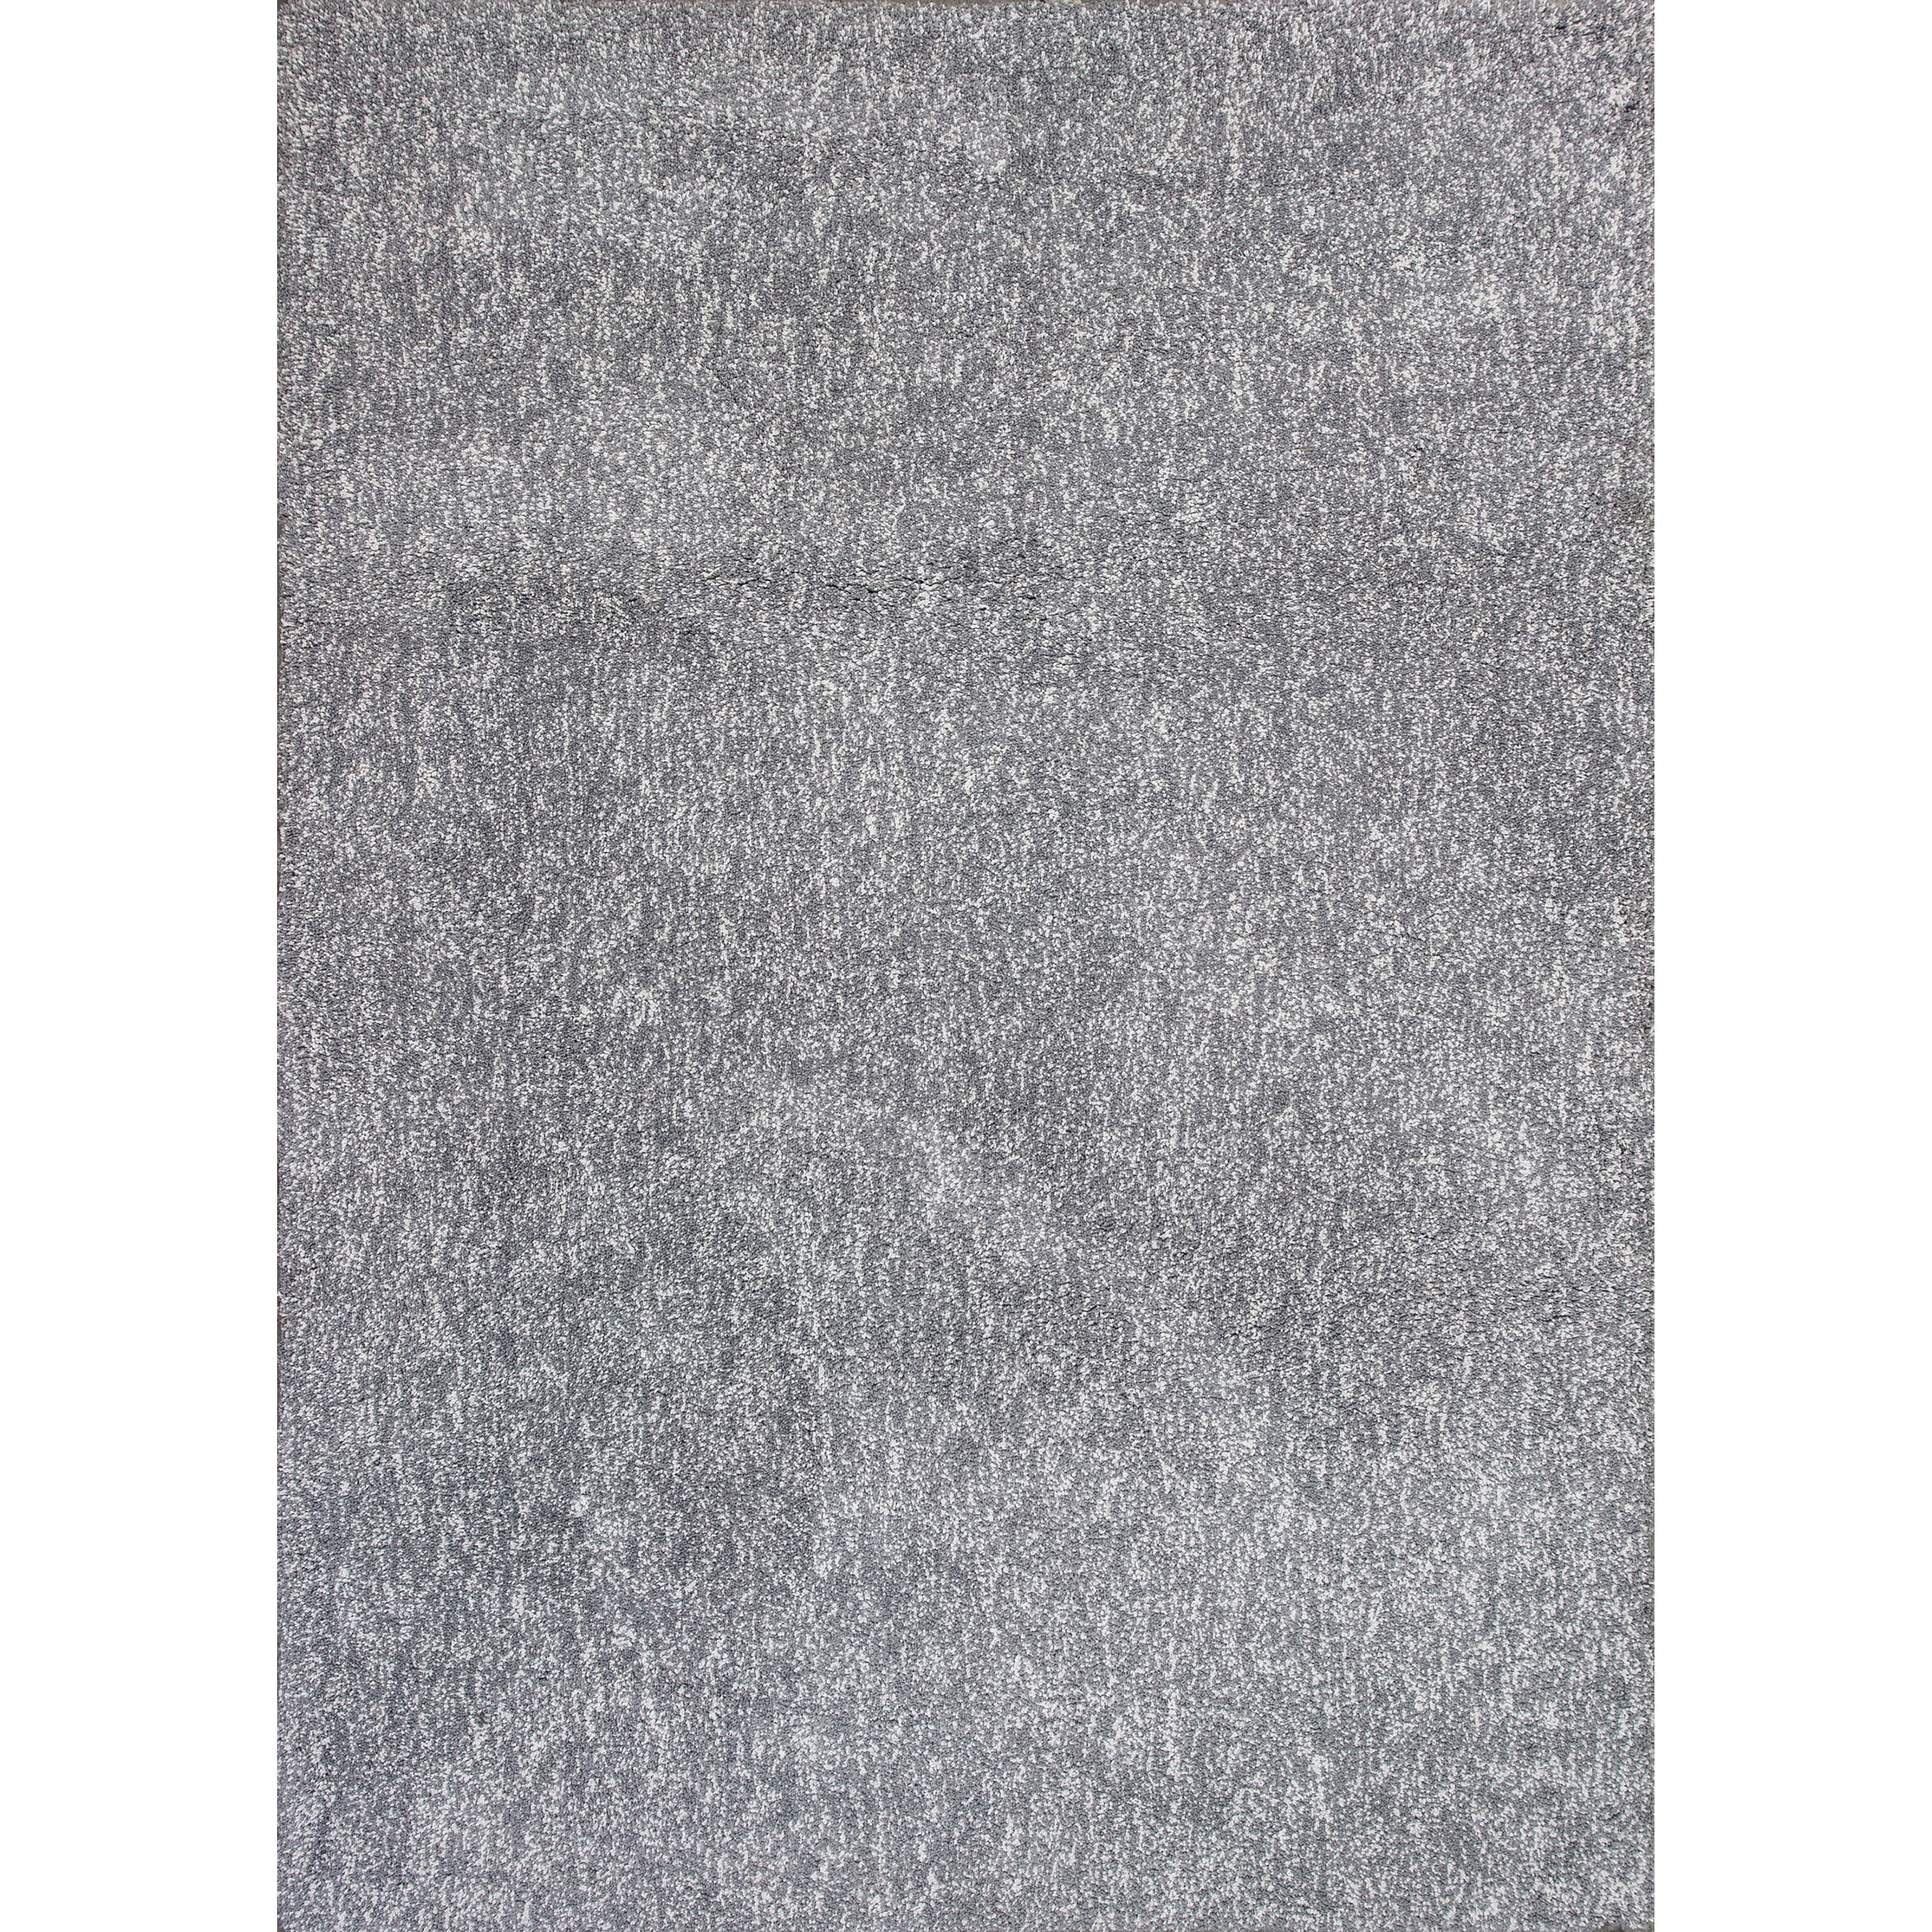 """Bliss 2'3"""" X 3'9"""" Grey Heather Shag Area Rug by Kas at Zak's Home"""